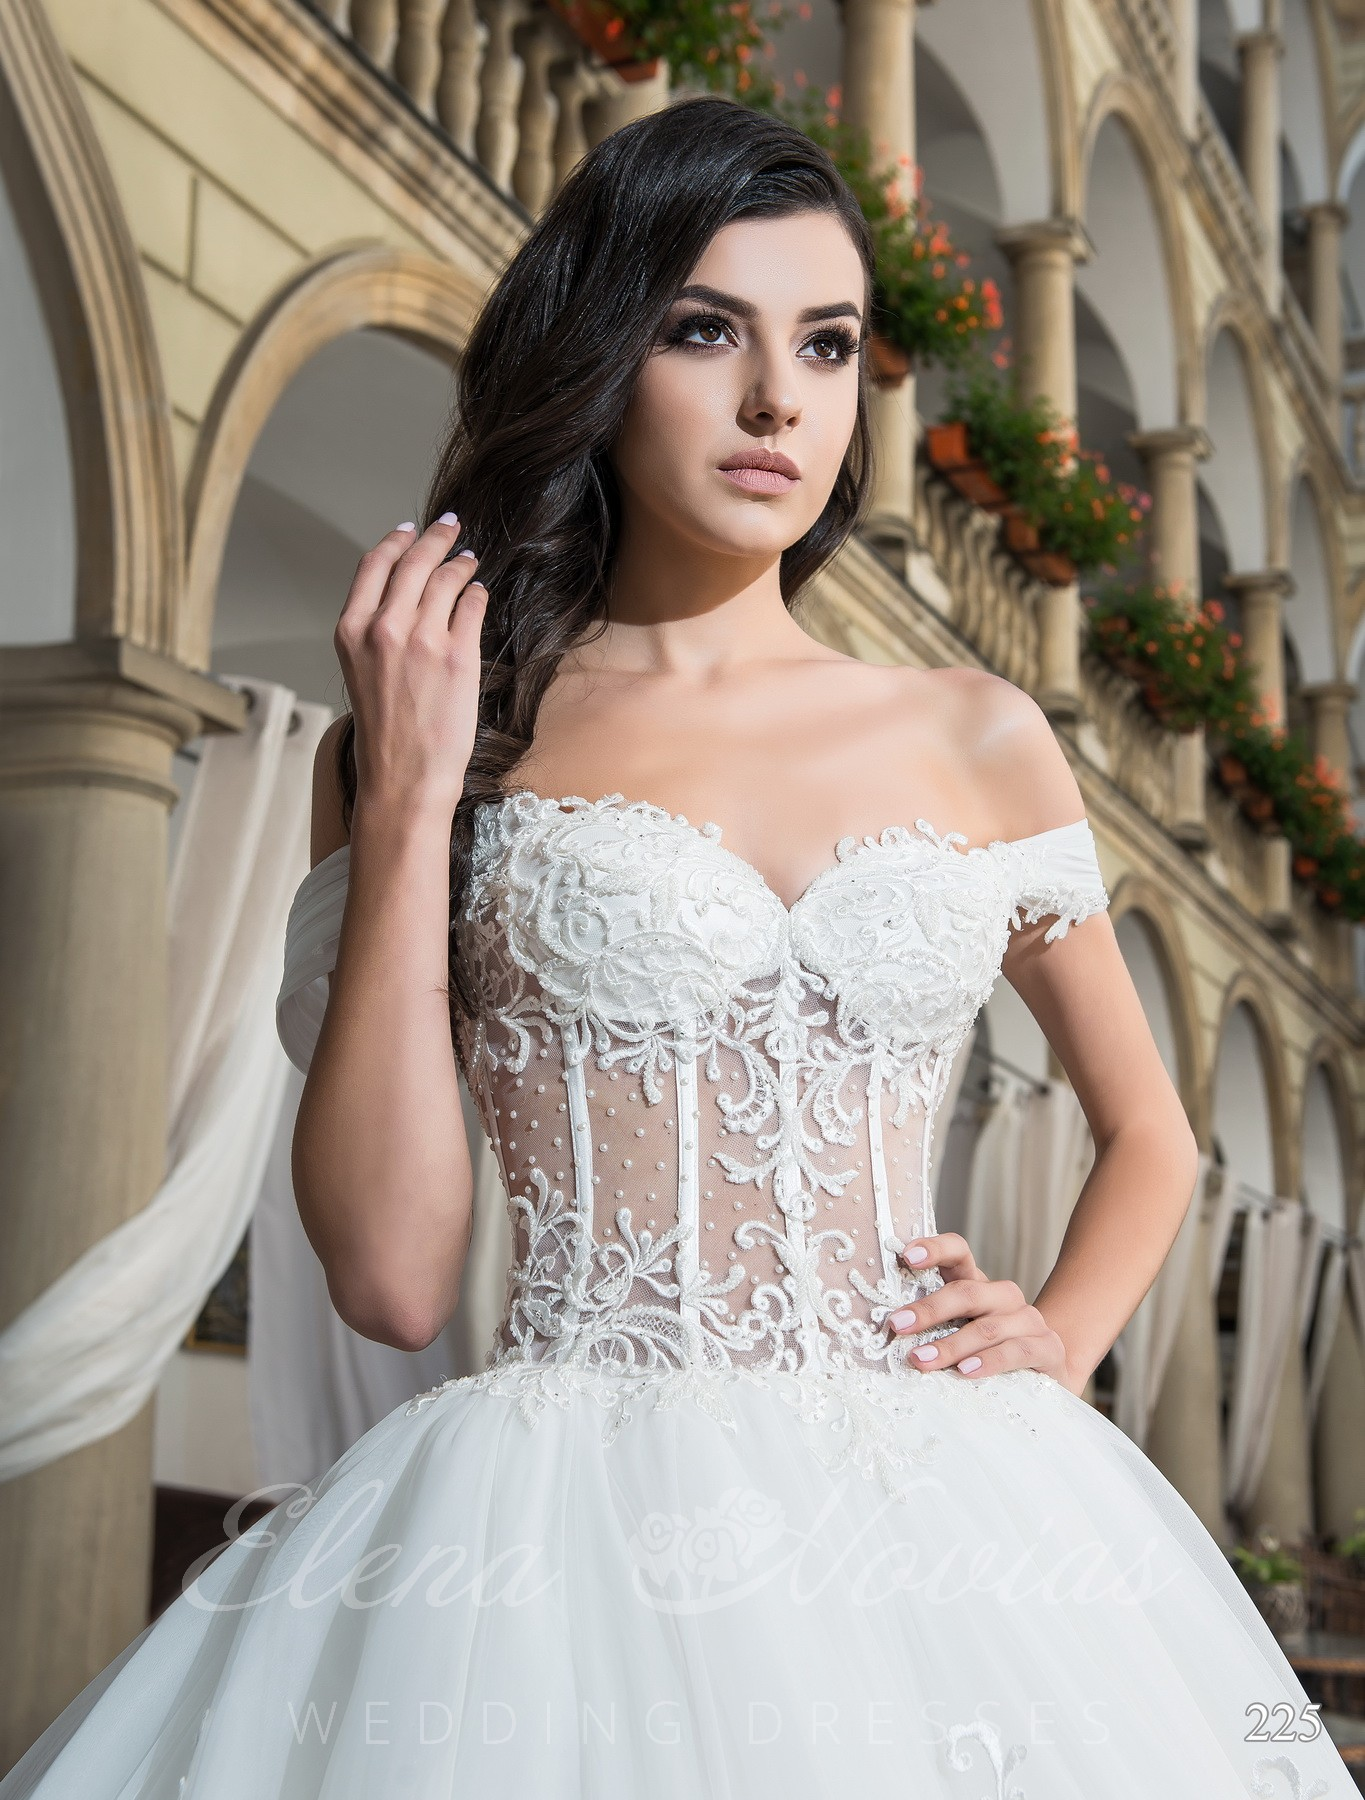 White wedding dress model 225